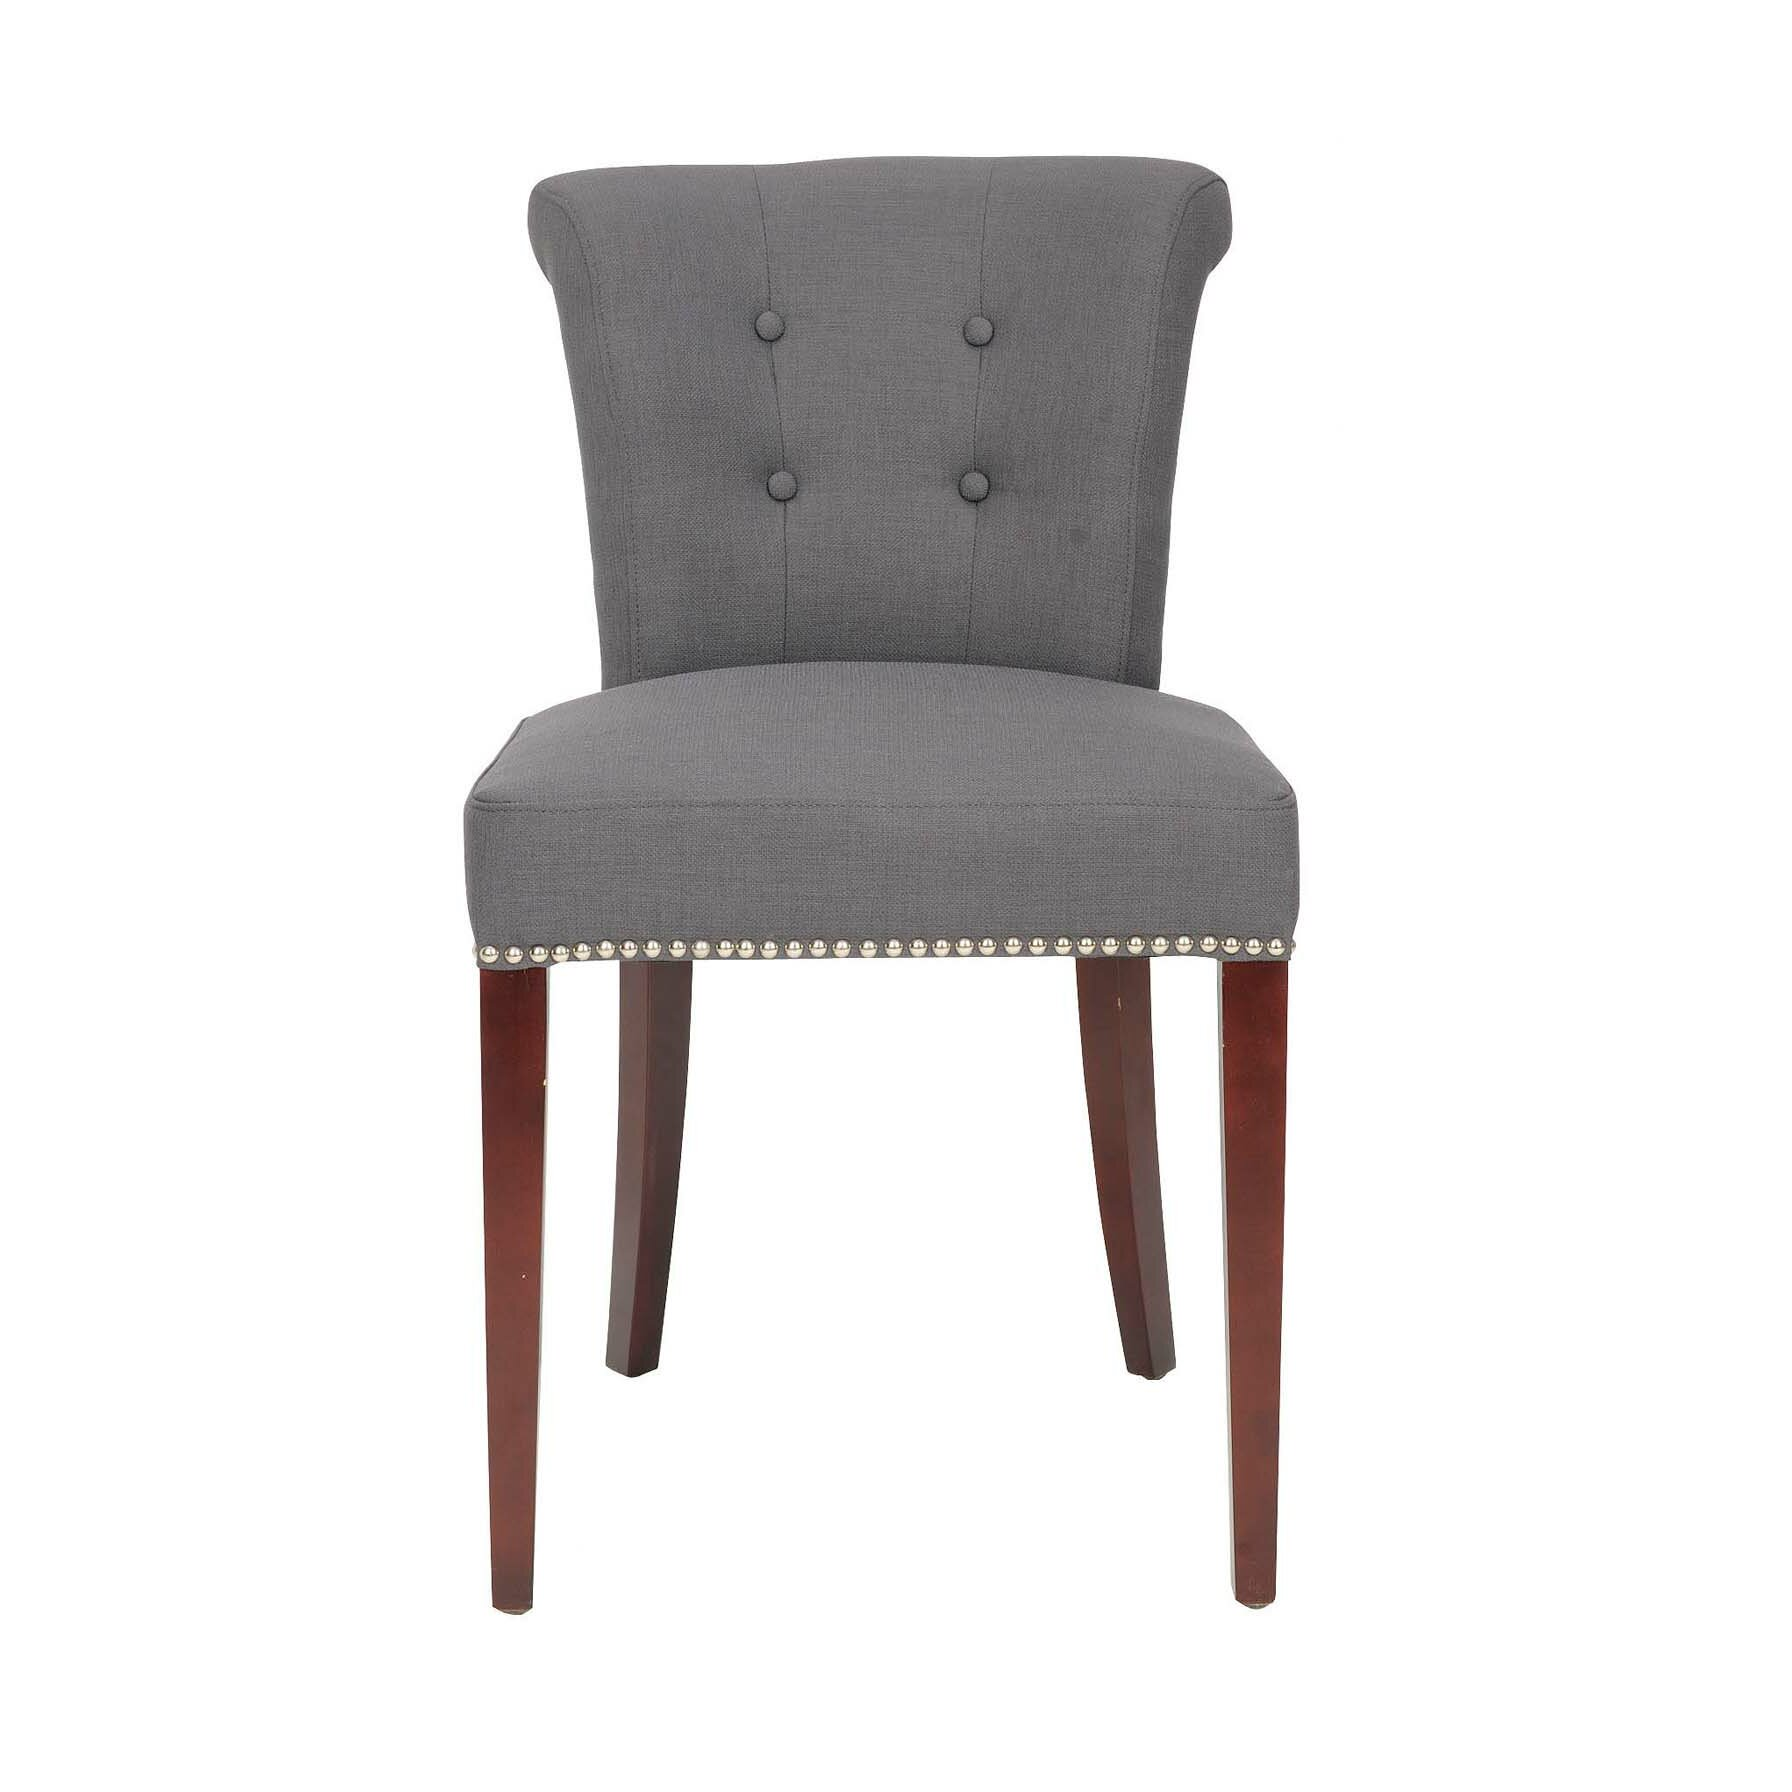 Image Result For Safavieh Dining Room Chairs